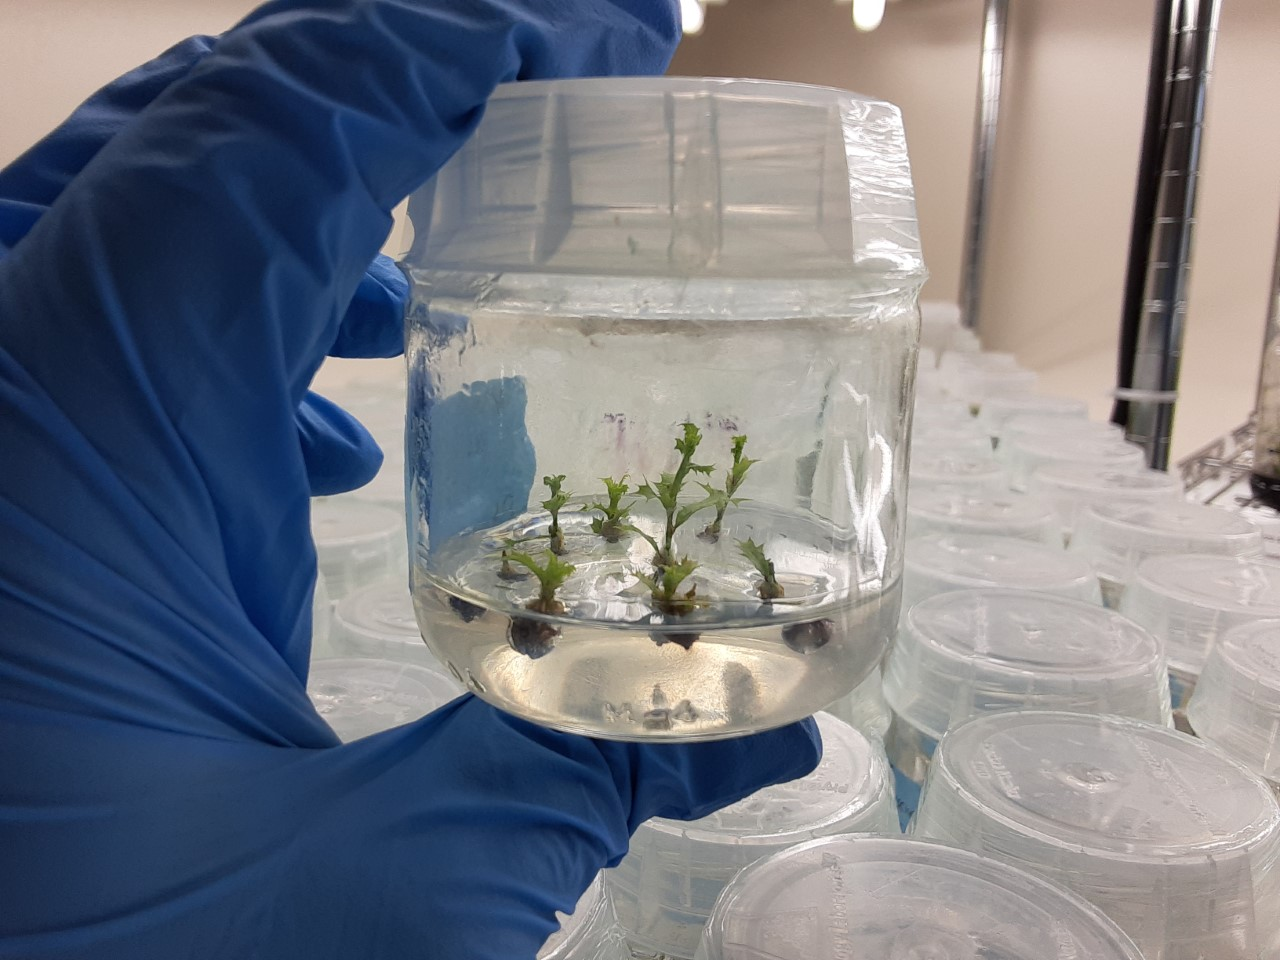 Nuttall's scrub oak (Quercus dumosa) is a threatened oak species - and oaks cannot be conserved through traditional seed banking methods. Tissue culture and cryopreservation will be key to their conservation.